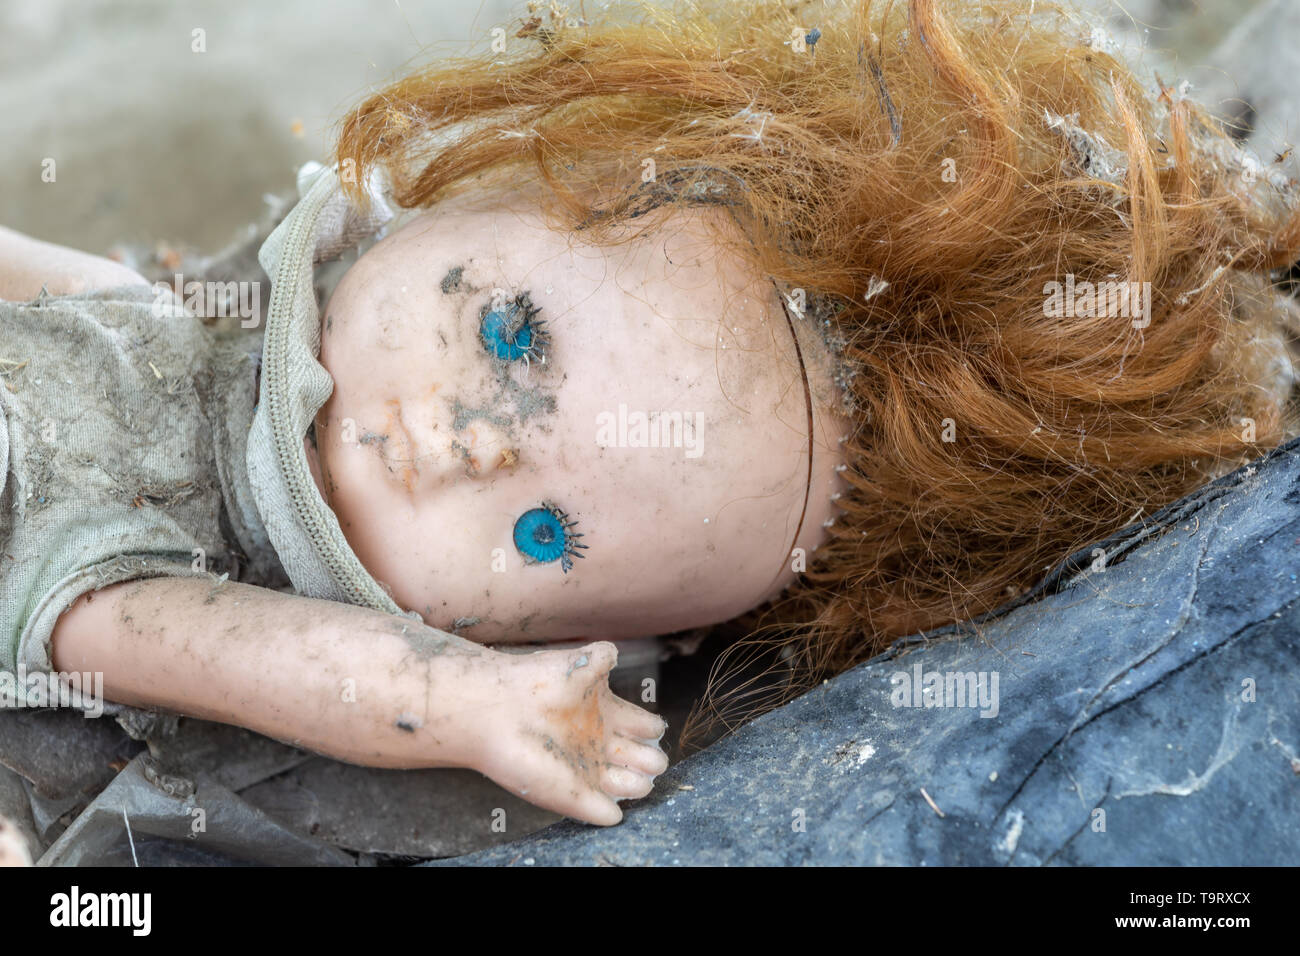 Dirty old doll in an abandoned house in Chernobyl exclusion zone in Belarus - Stock Image